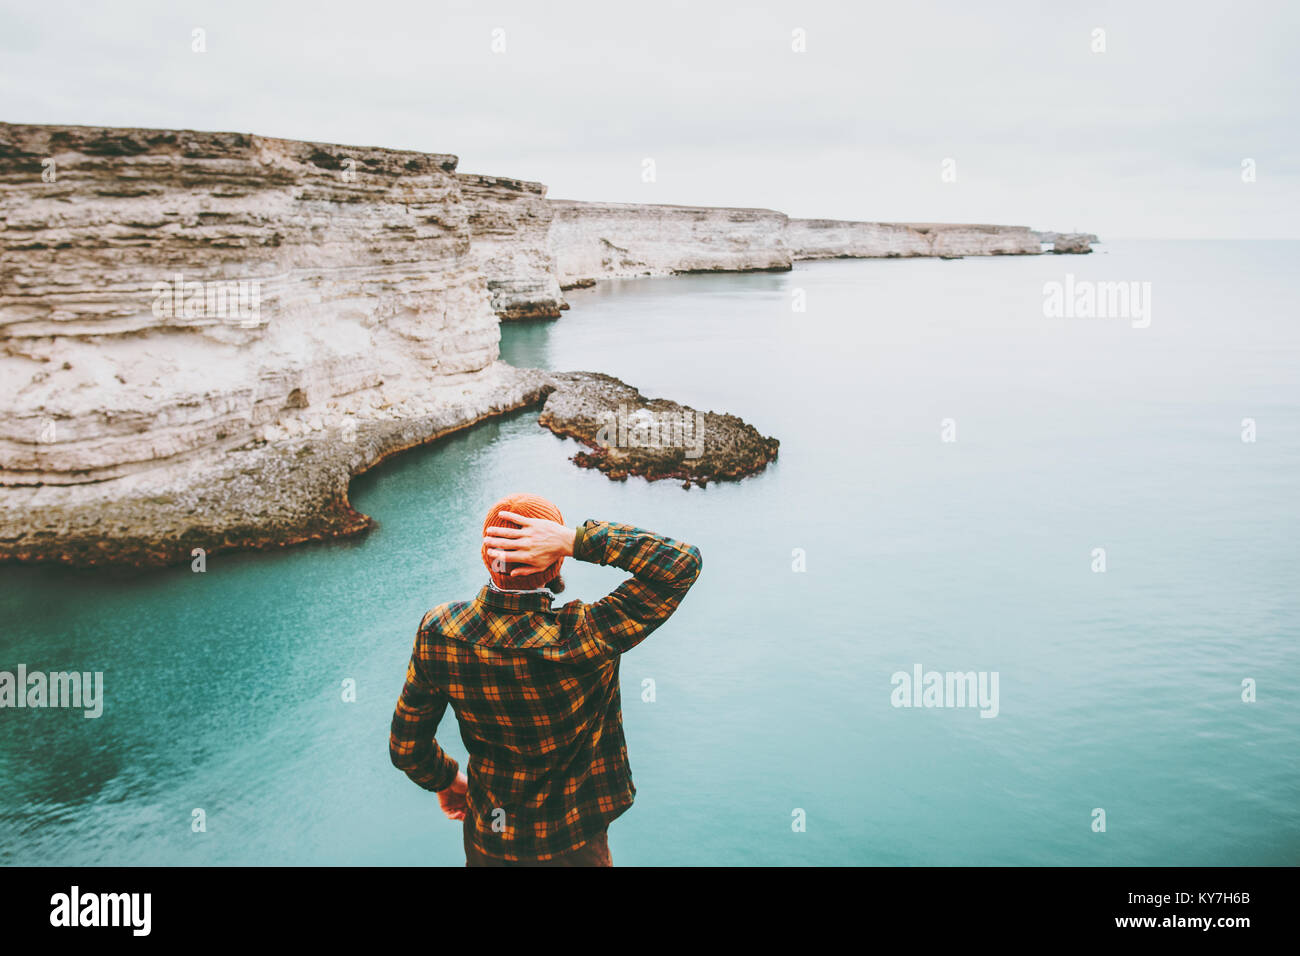 Man walking at cold sea Travel Fashion Lifestyle hat and cozy shirt clothing harmony with nature authentic style - Stock Image